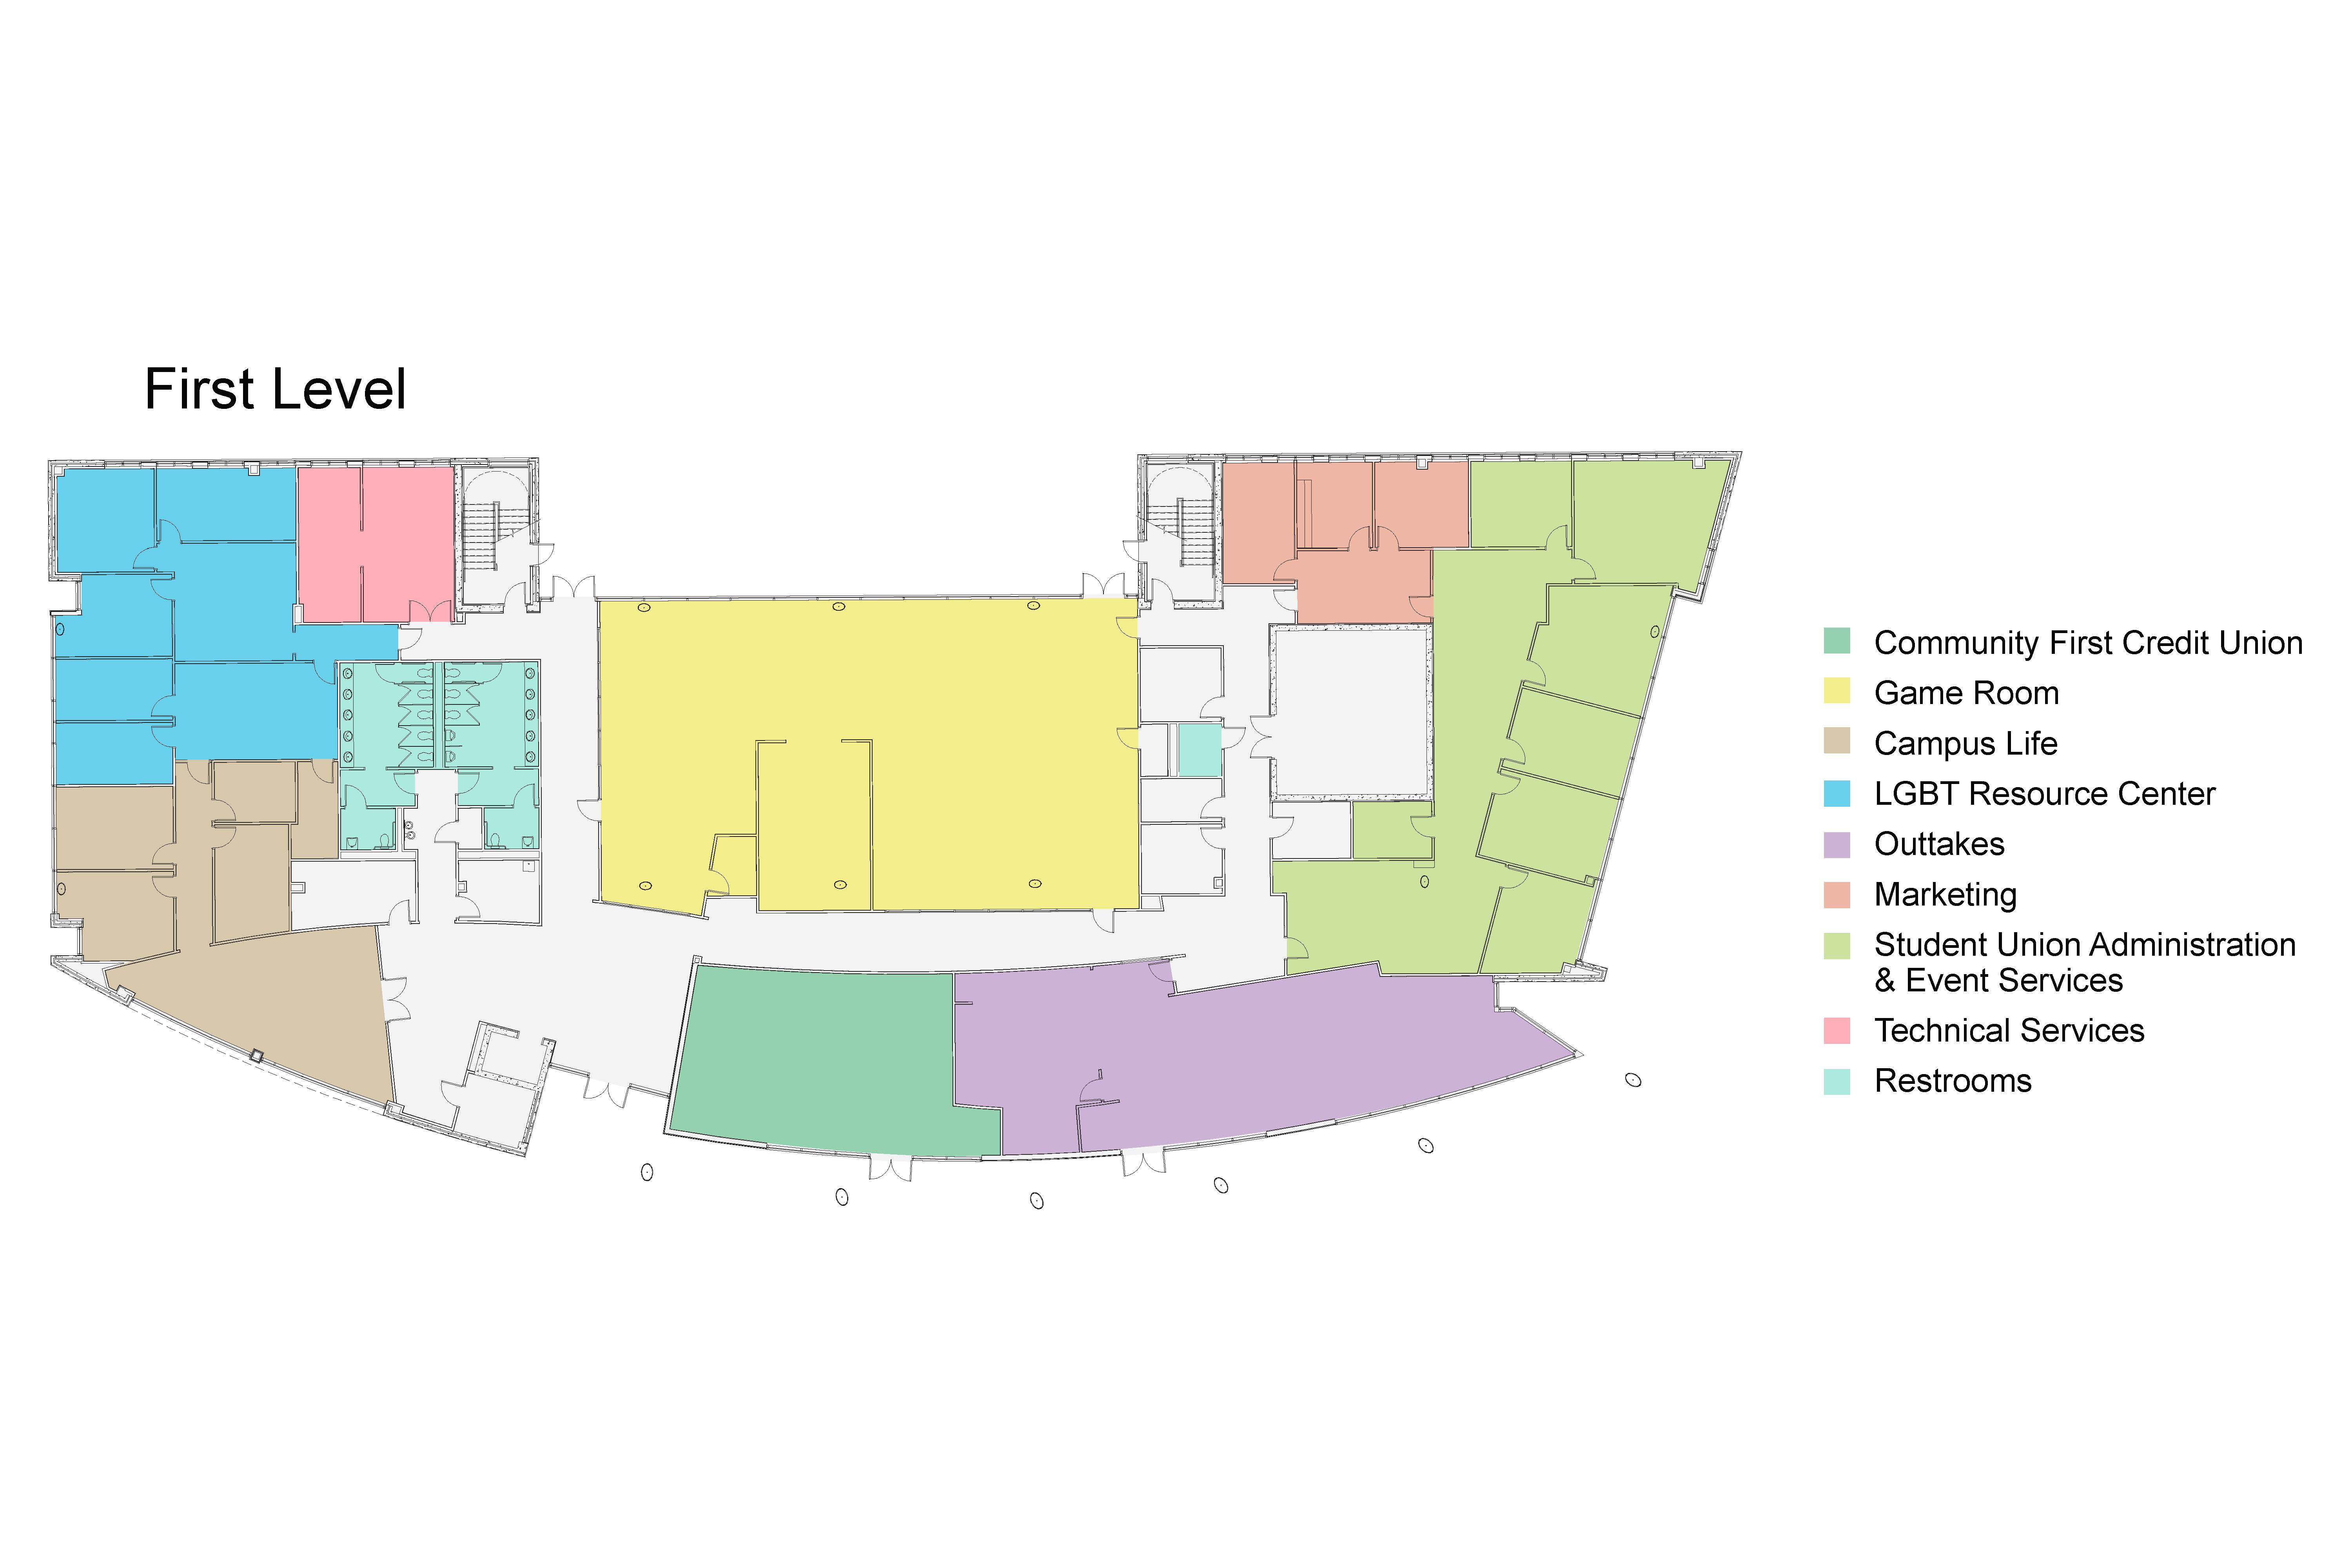 Student Union 1st floor map east side. See text version below.